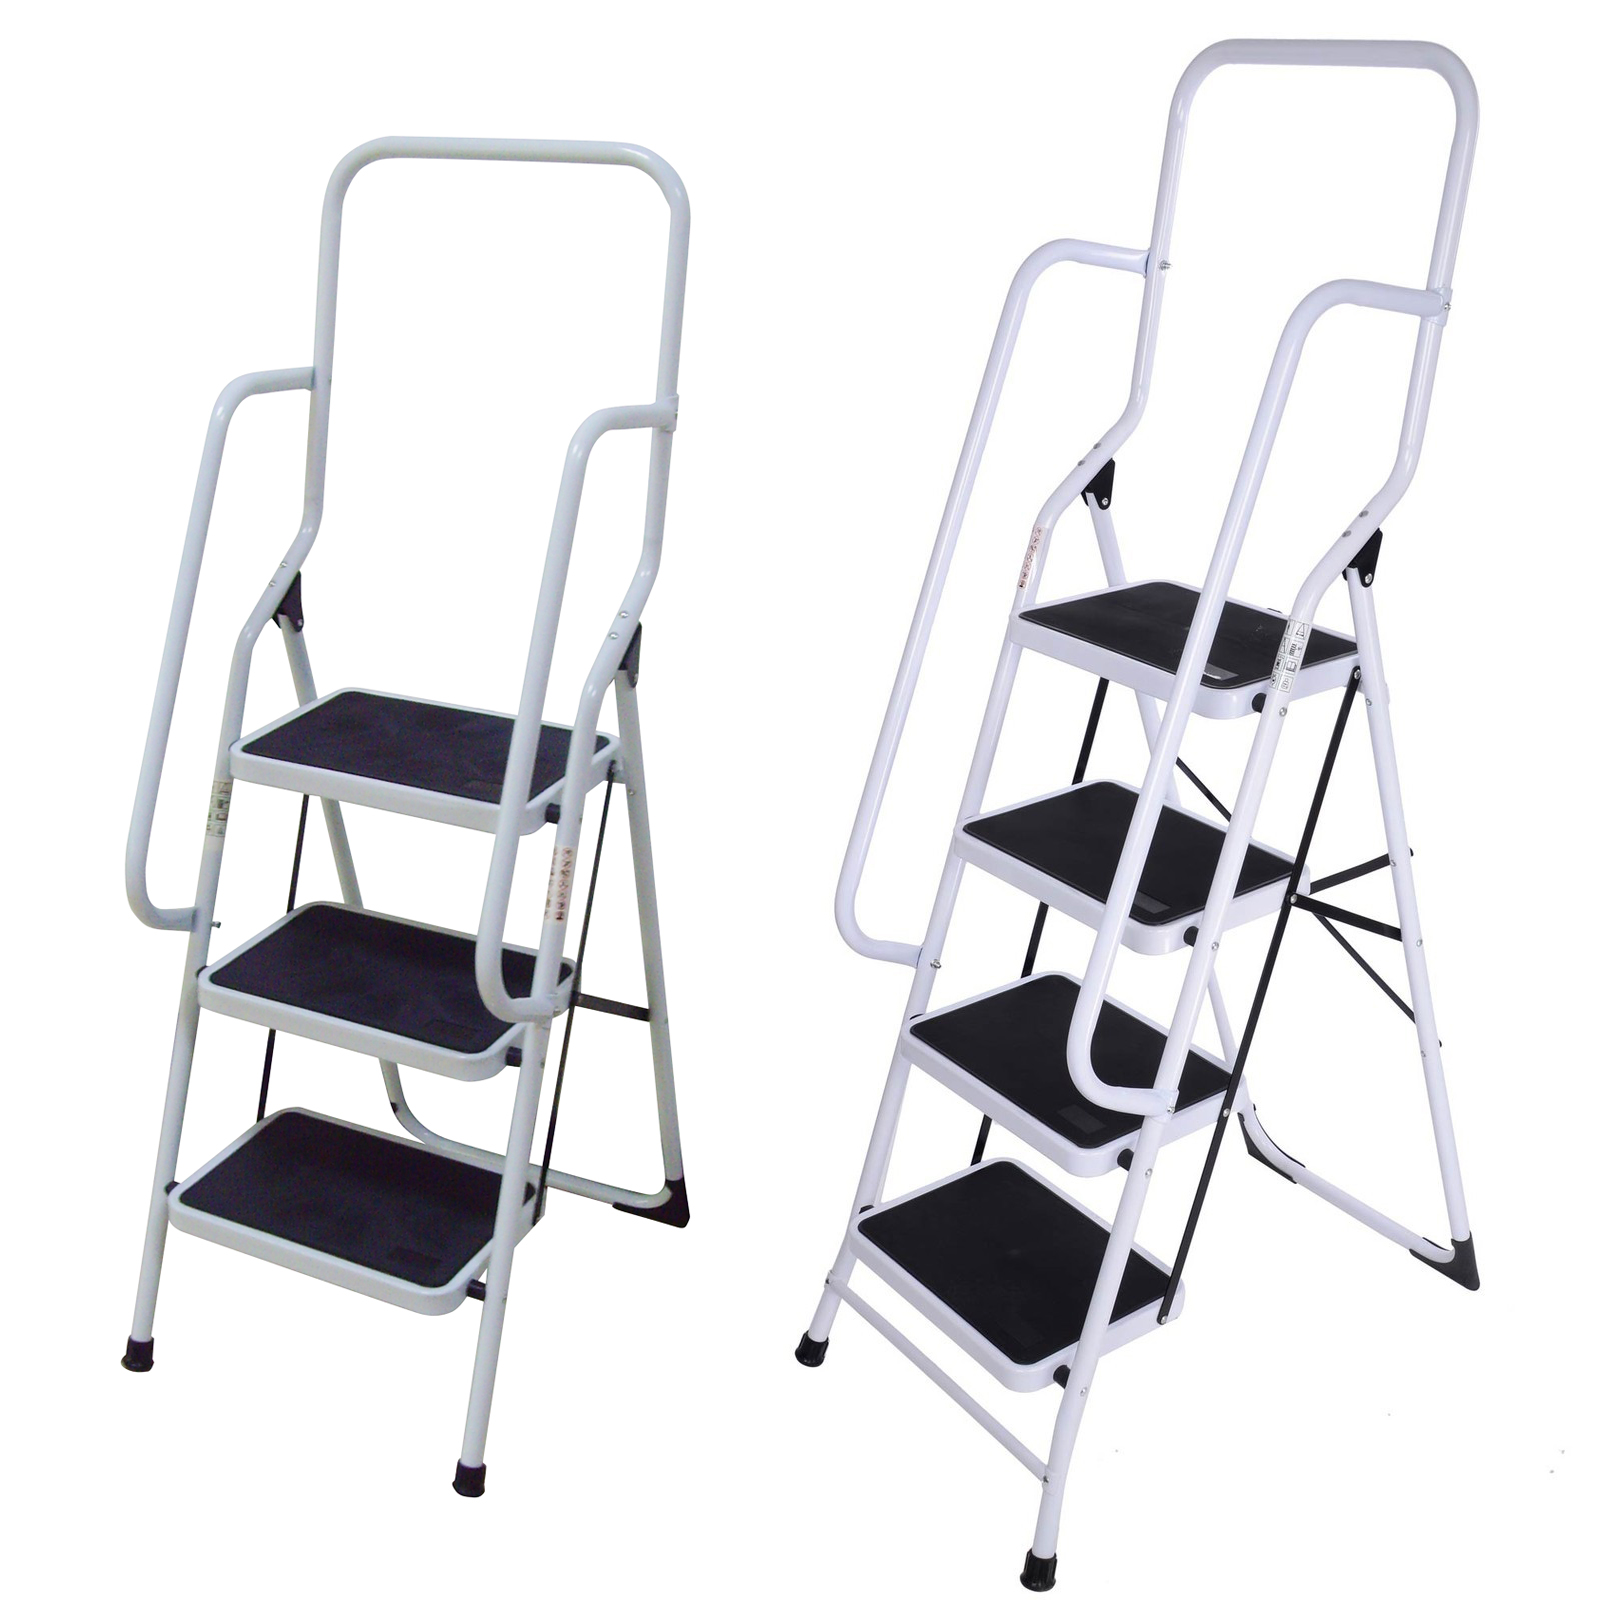 4 Step Ladder Stool Tyres2c